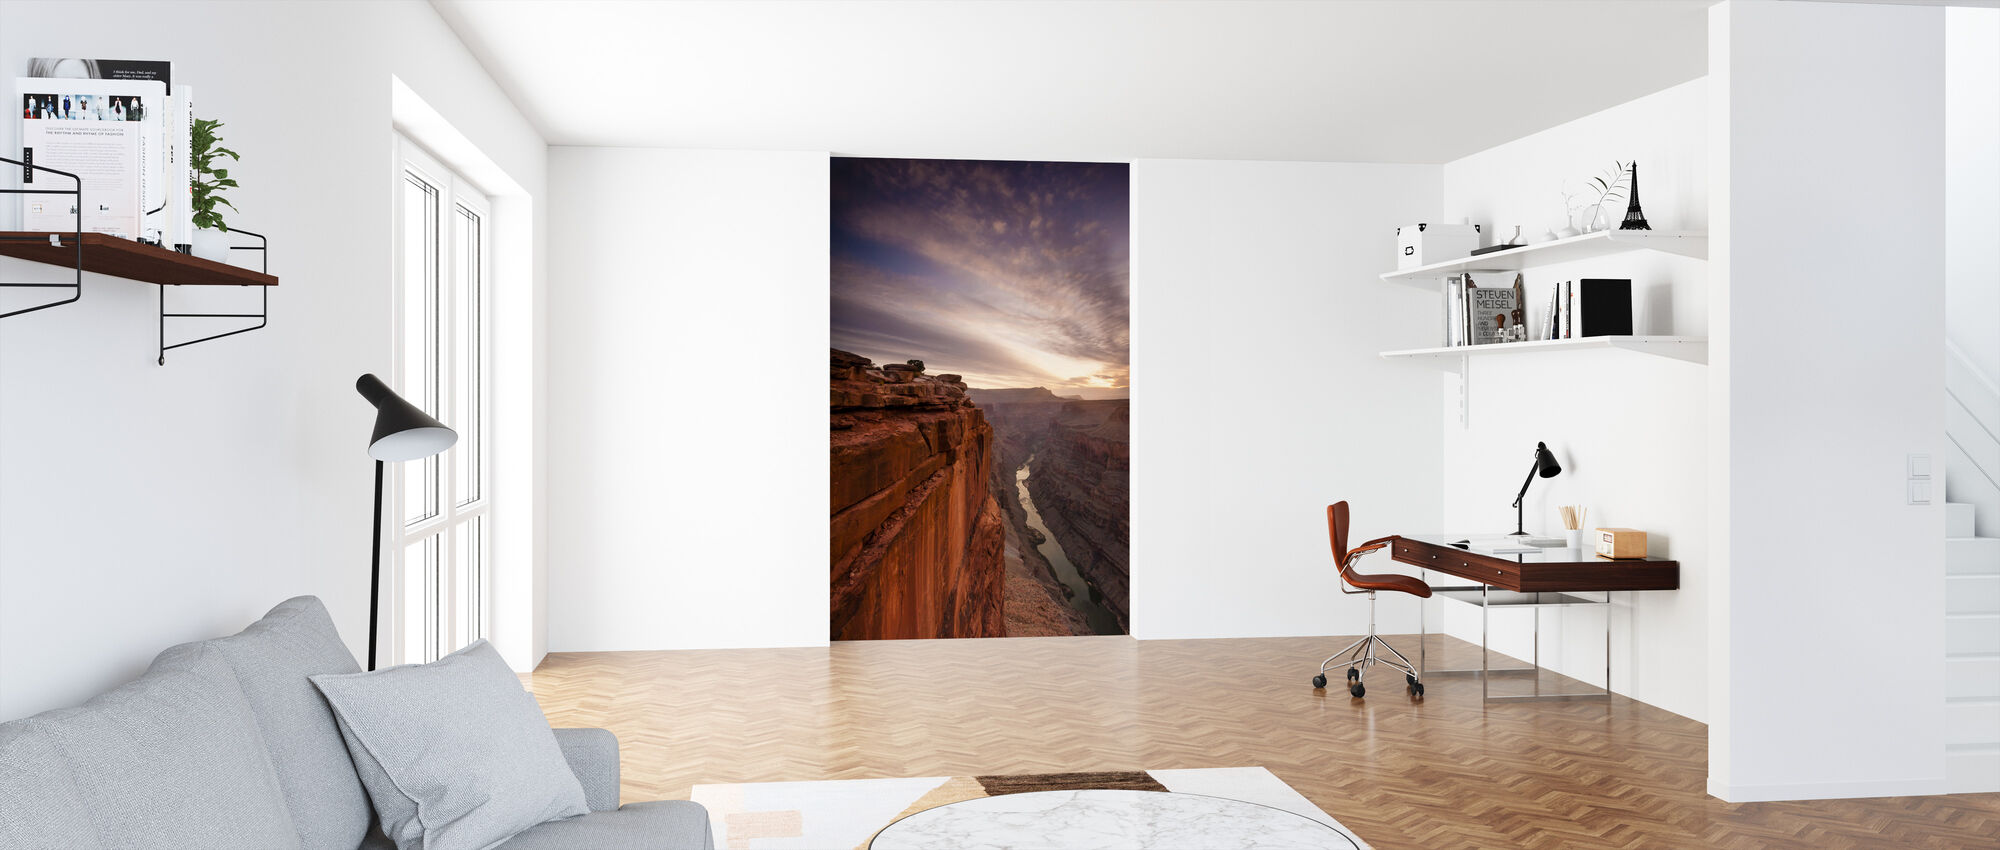 Grand Canyon Edge - Wallpaper - Office